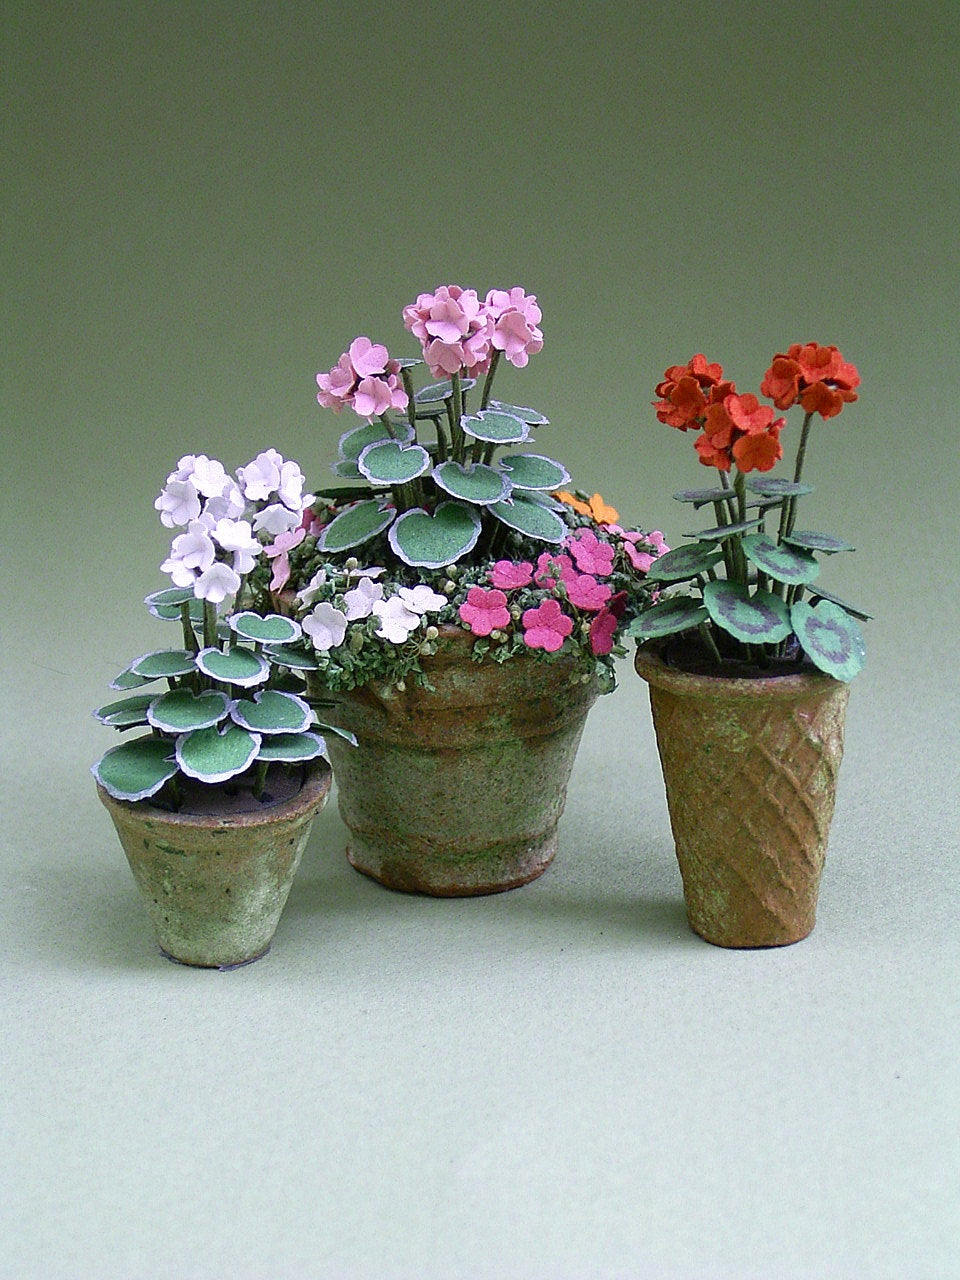 Geranium Paper Flower Kit  for 1/12th scale Dollhouses, Florists and Miniature Gardens